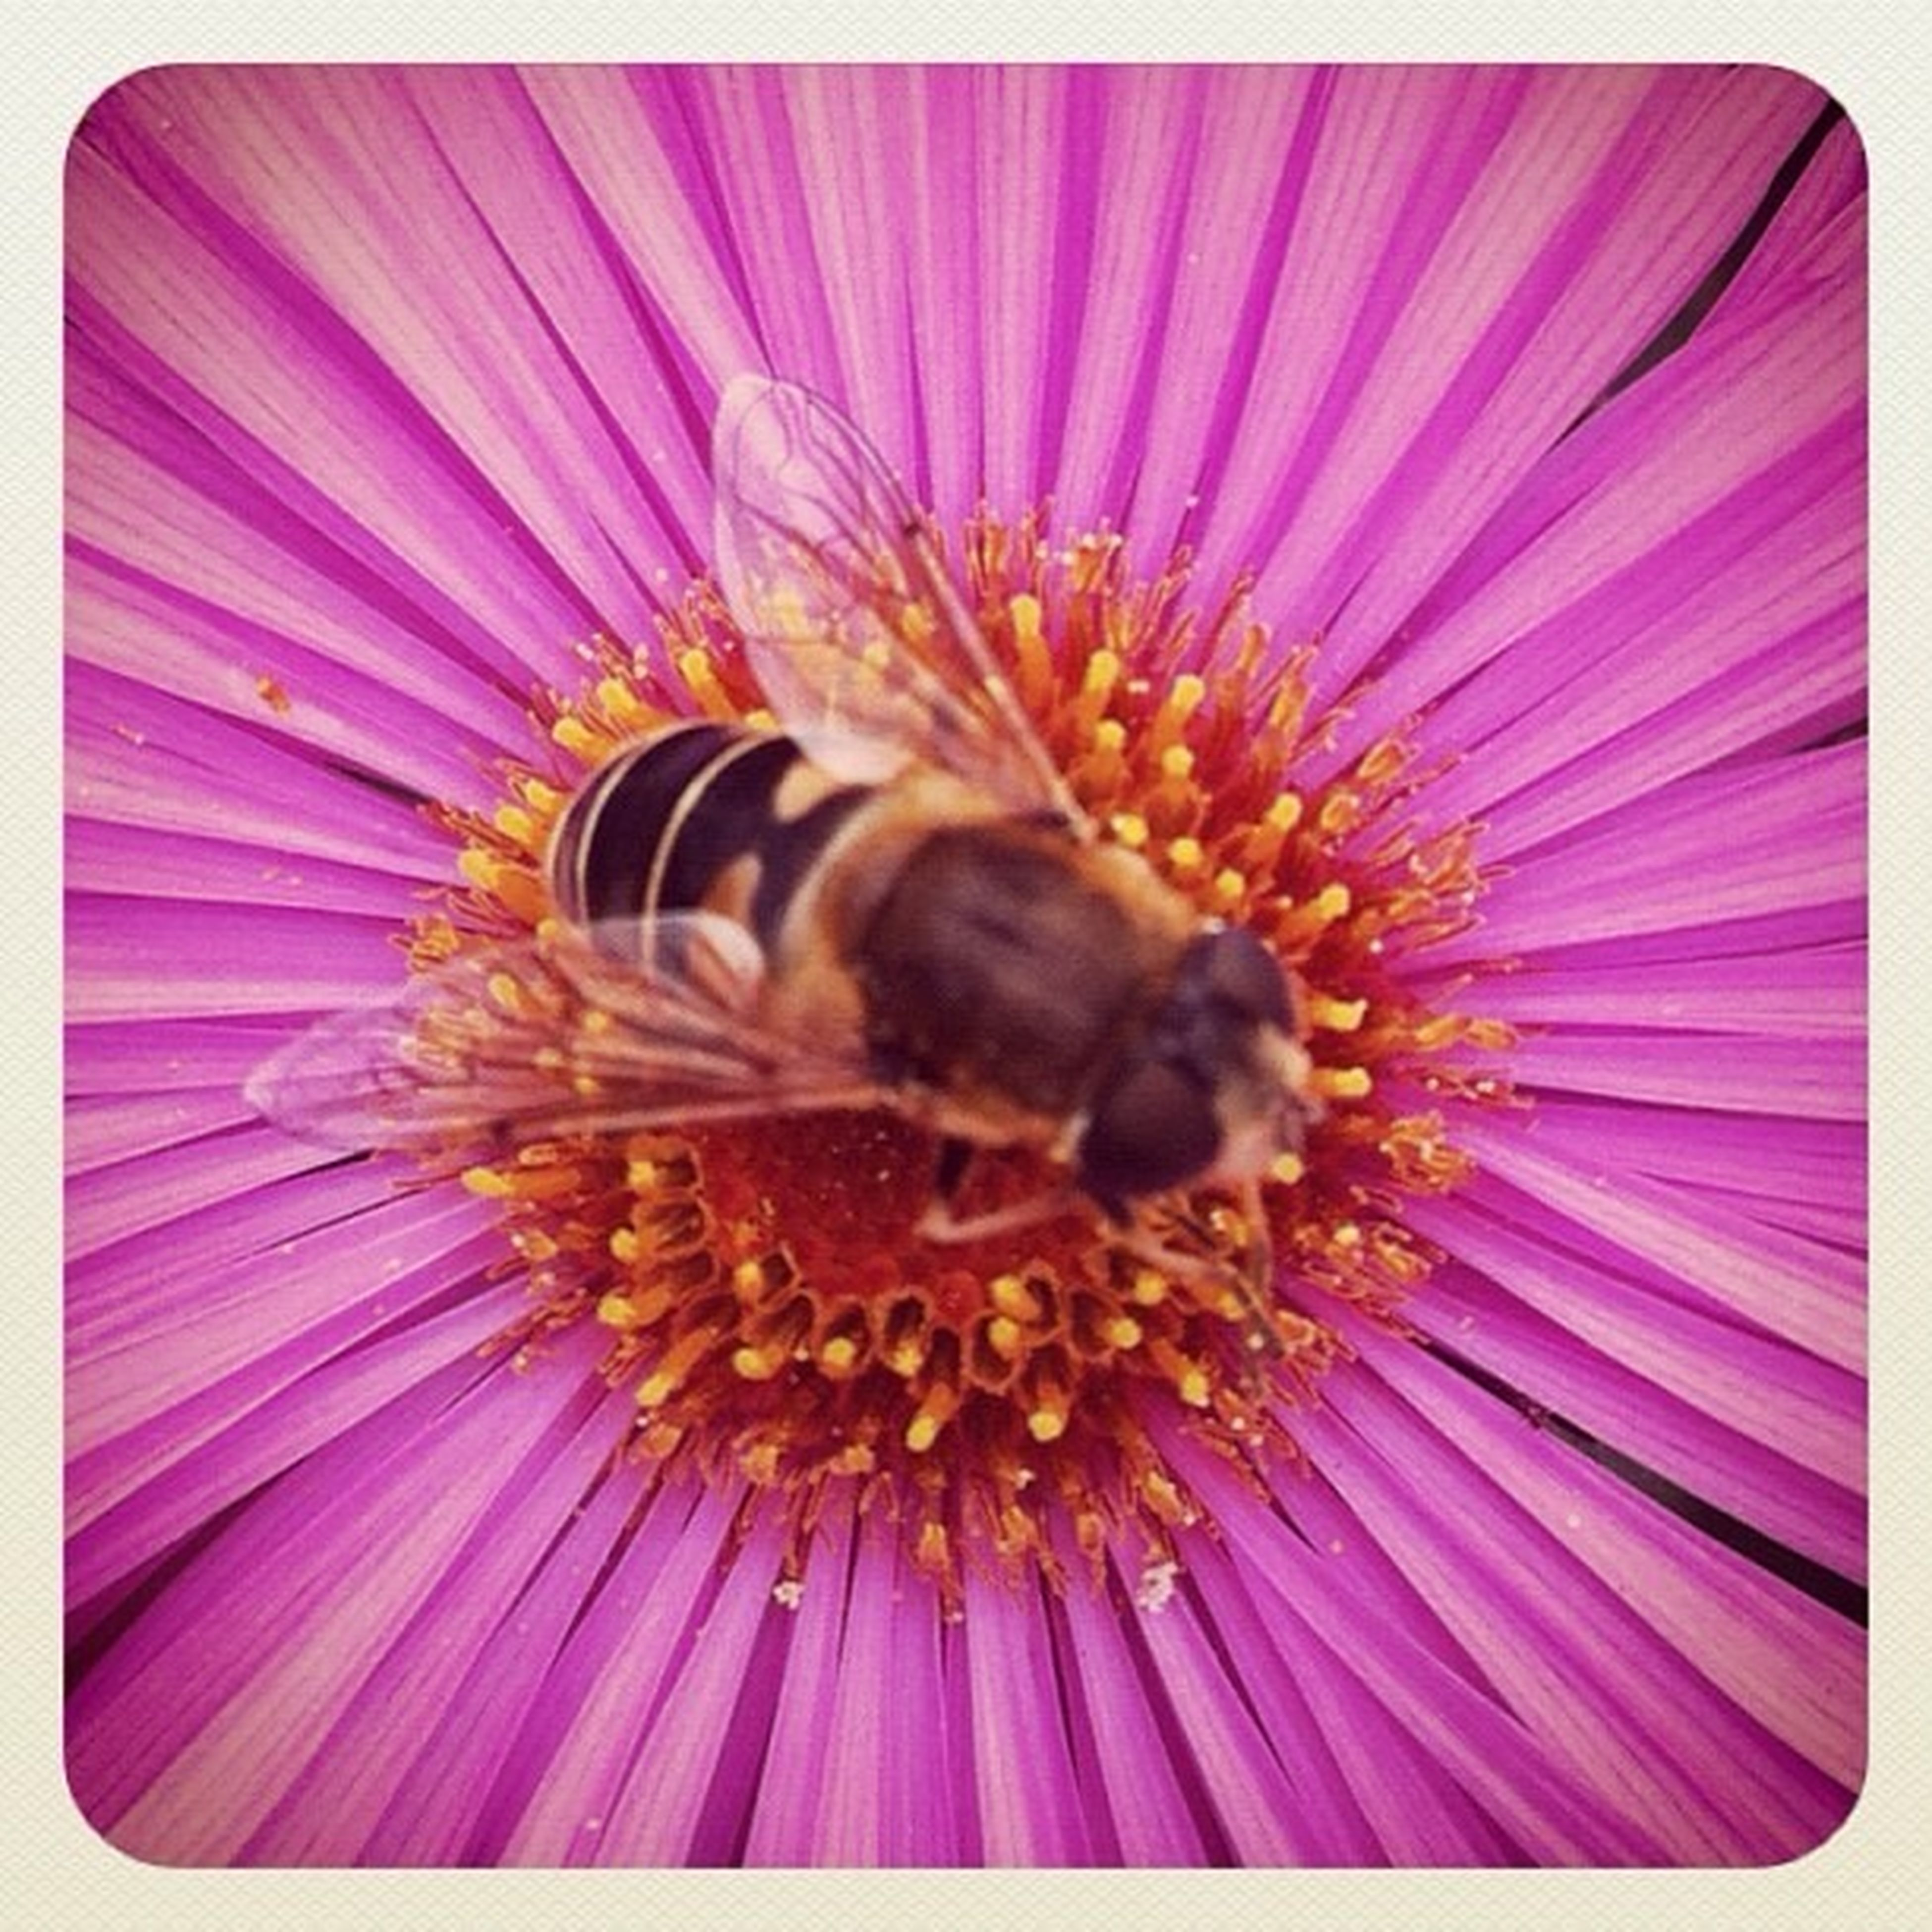 flower, insect, one animal, animal themes, petal, animals in the wild, wildlife, flower head, fragility, freshness, pollen, pollination, close-up, transfer print, bee, beauty in nature, nature, pink color, purple, auto post production filter